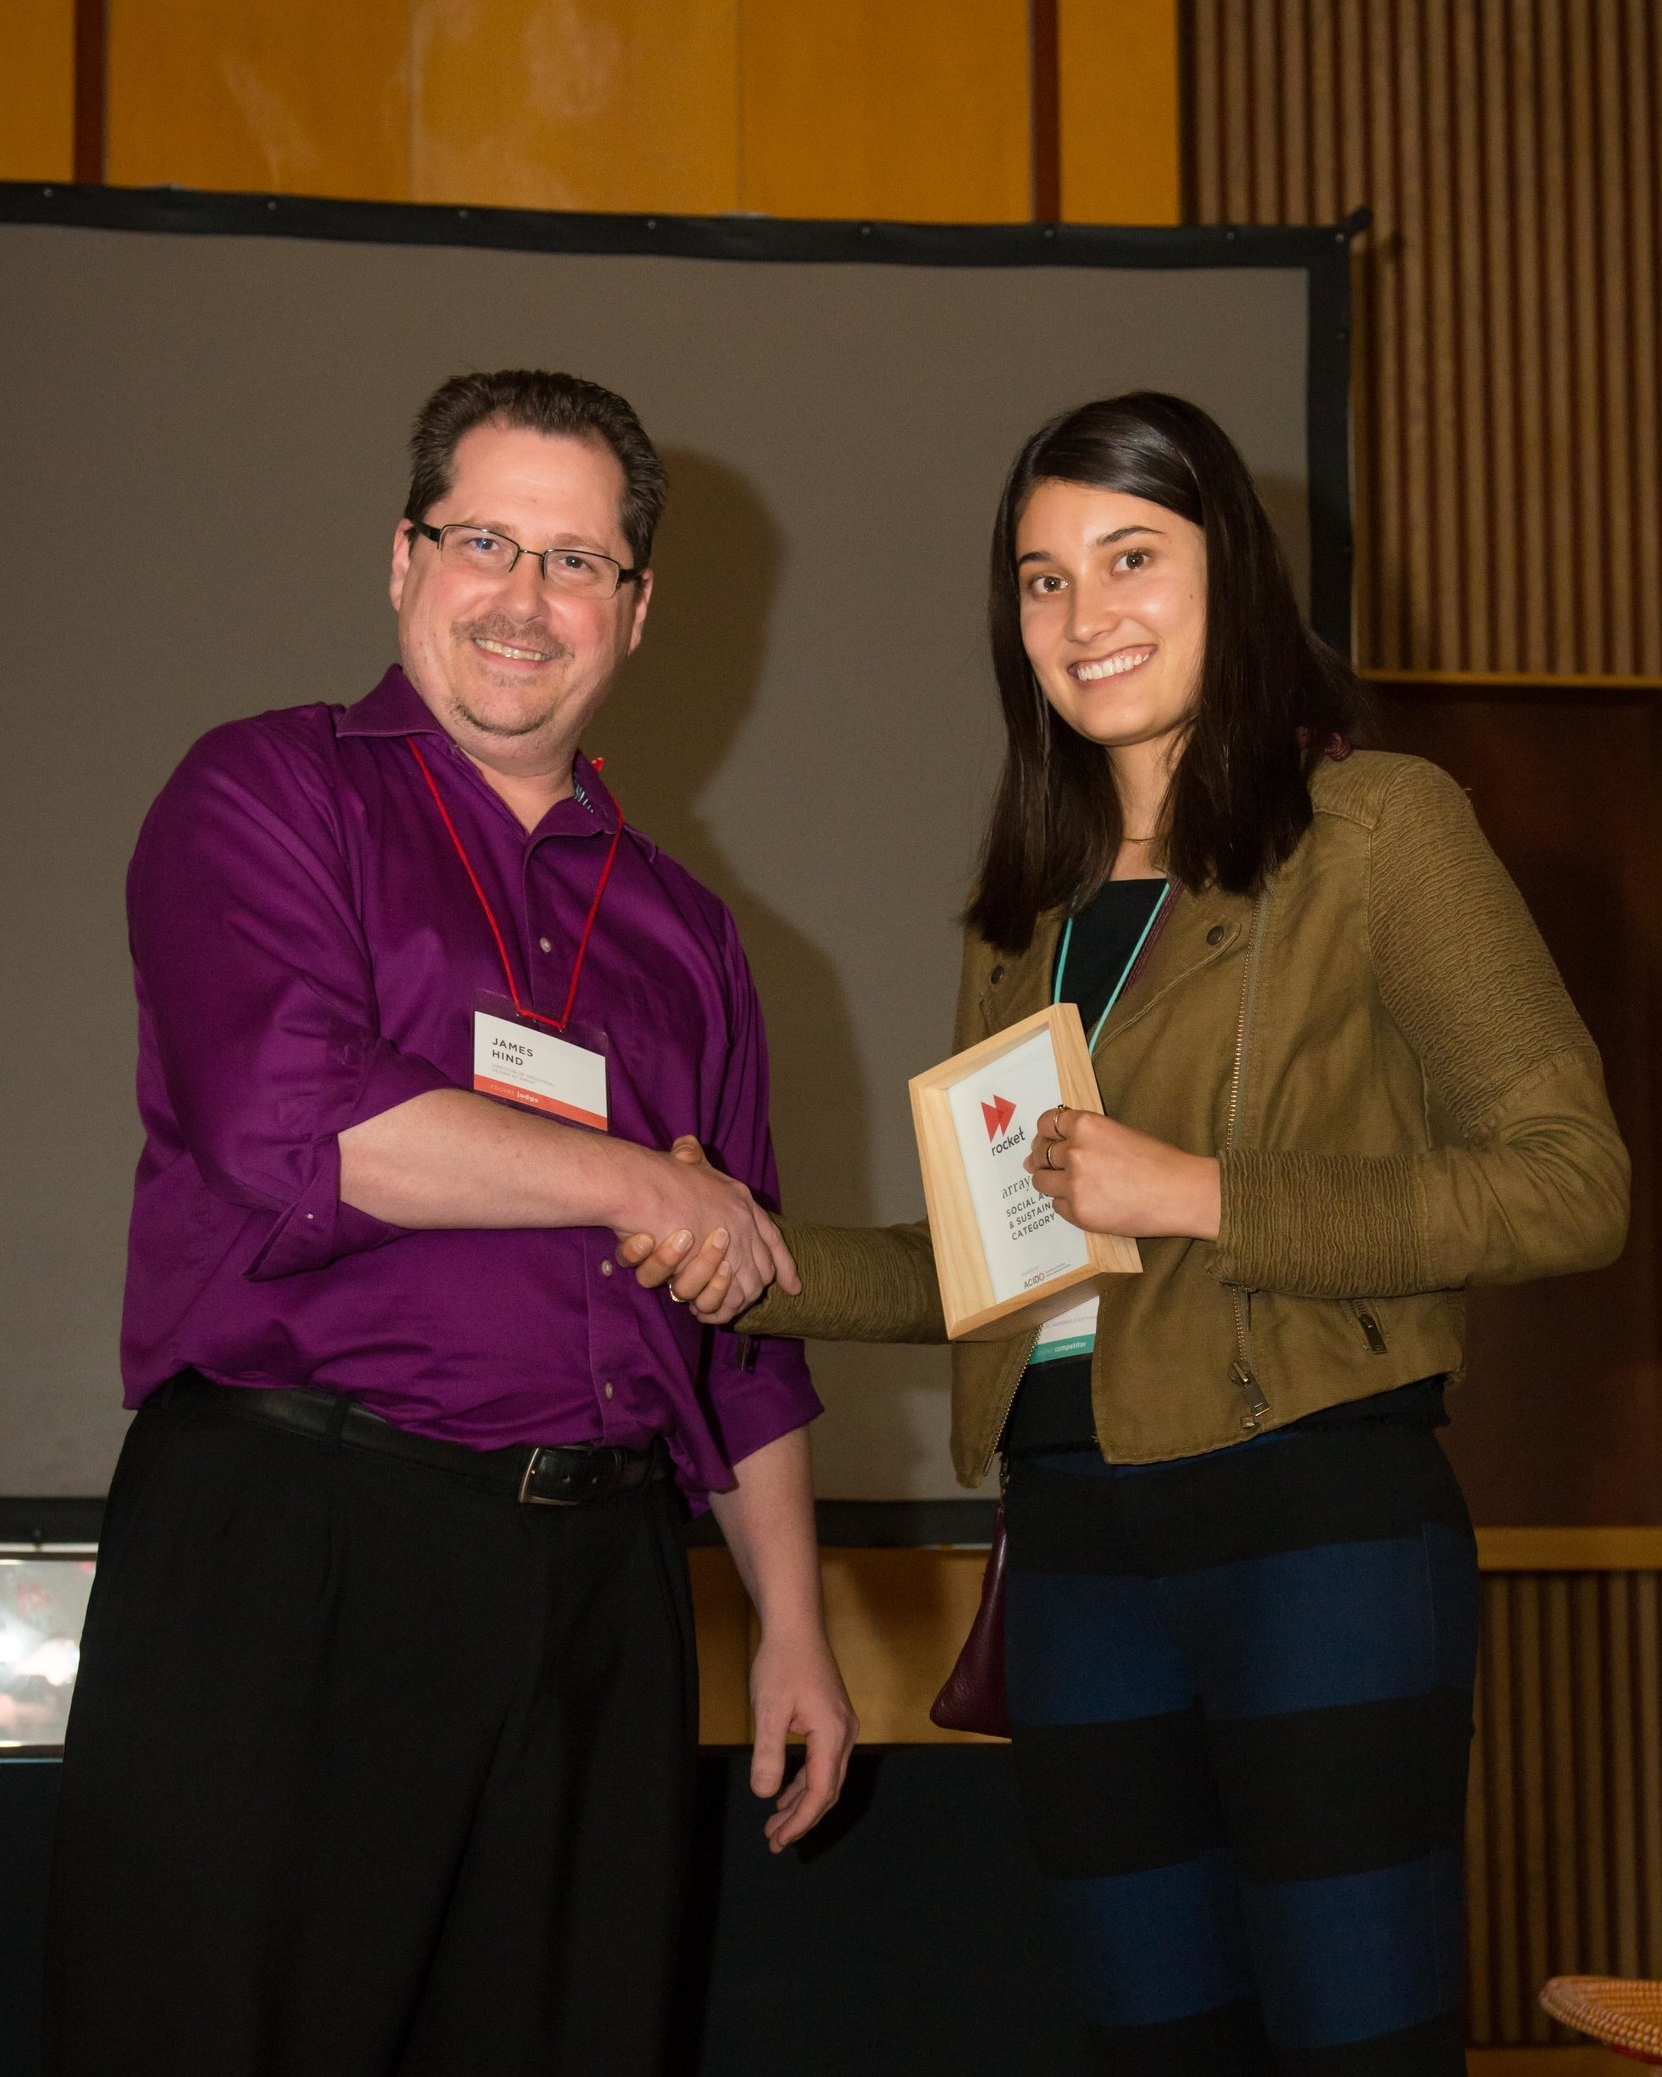 Meagan Louie accepting the Array Social Awareness & Sustainability Award from James Hind of Array.